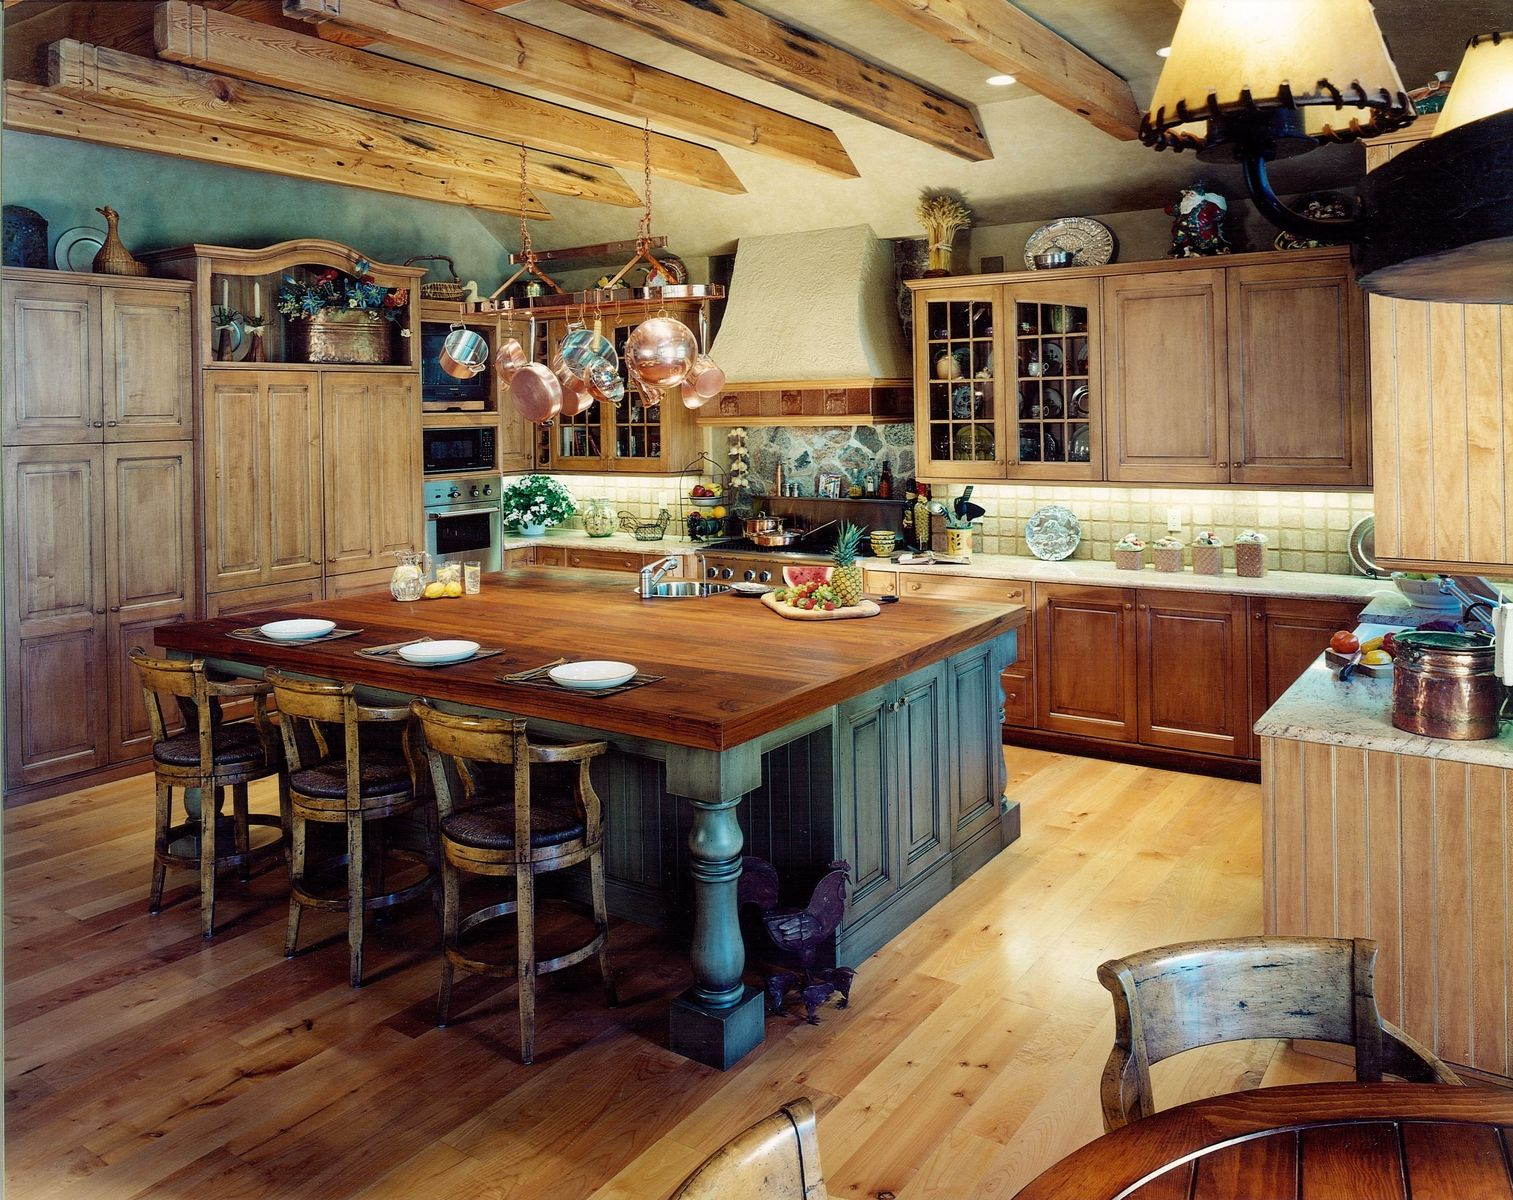 Custom Rustic Kitchens Magnificent Custom Rustic Mountain Kitchen & Diningcabinets & Design Iron Inspiration